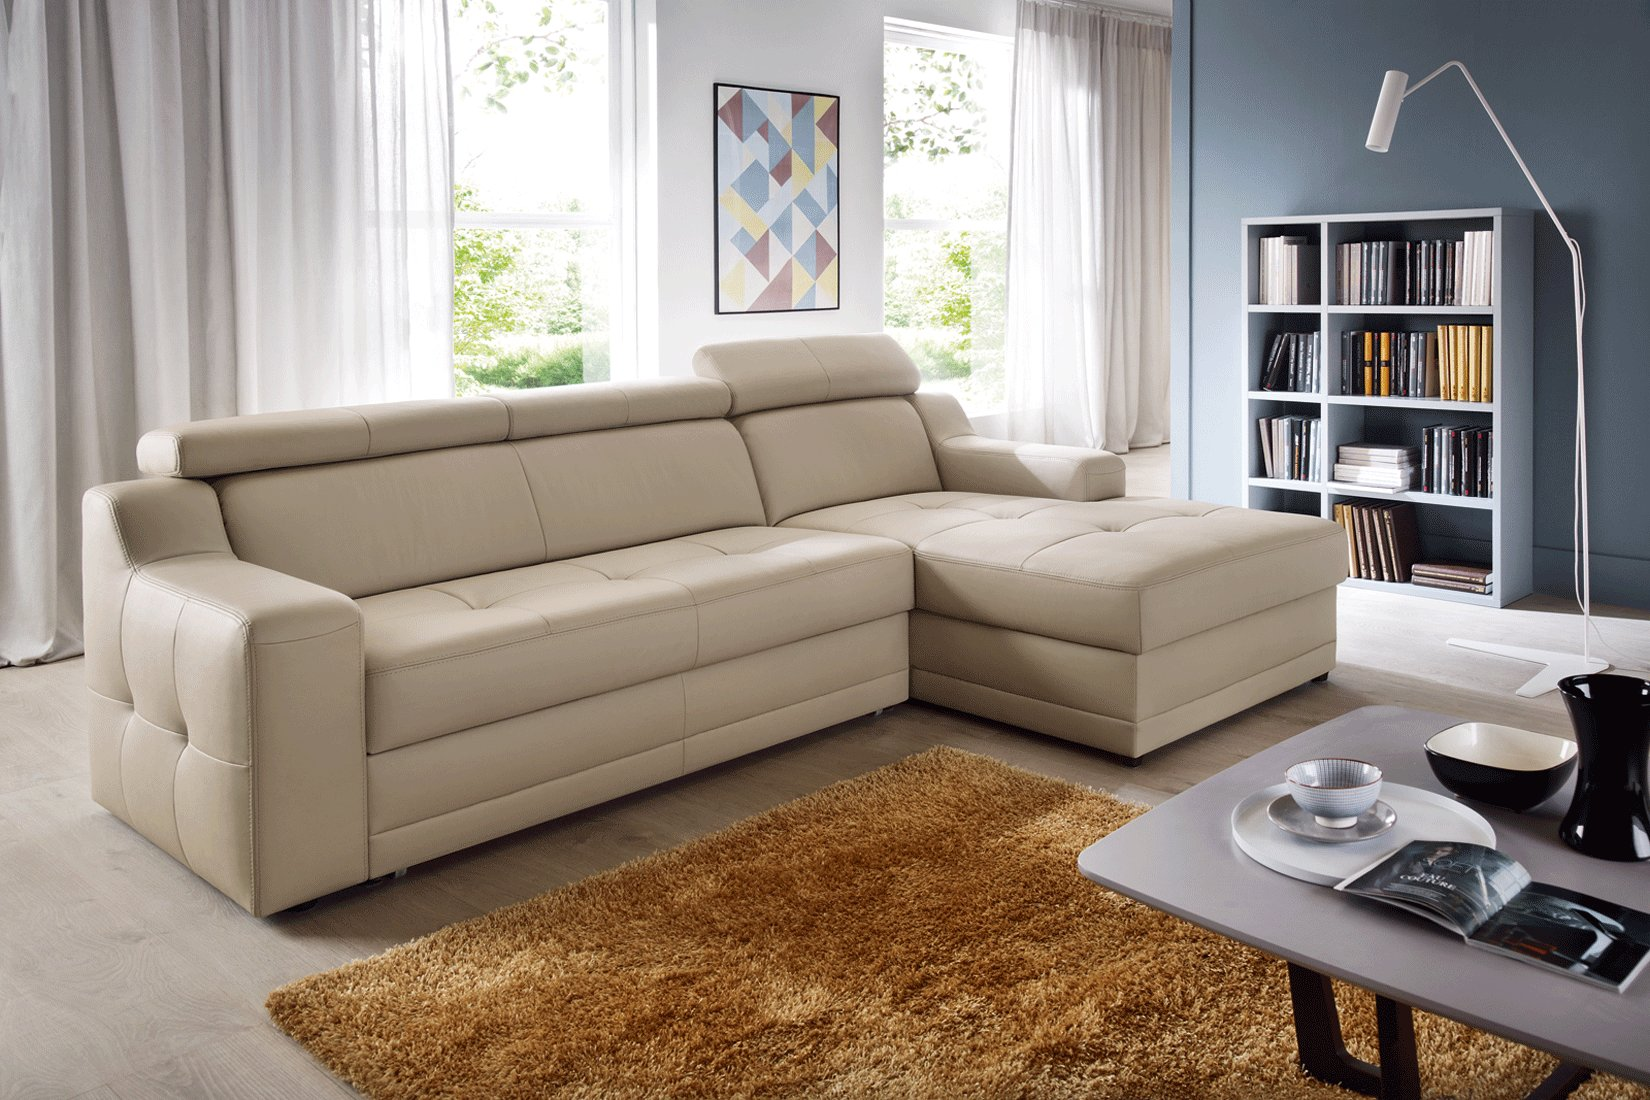 Magnificent Contemporary Tufted Furniture Italian Leather Upholstery Dailytribune Chair Design For Home Dailytribuneorg